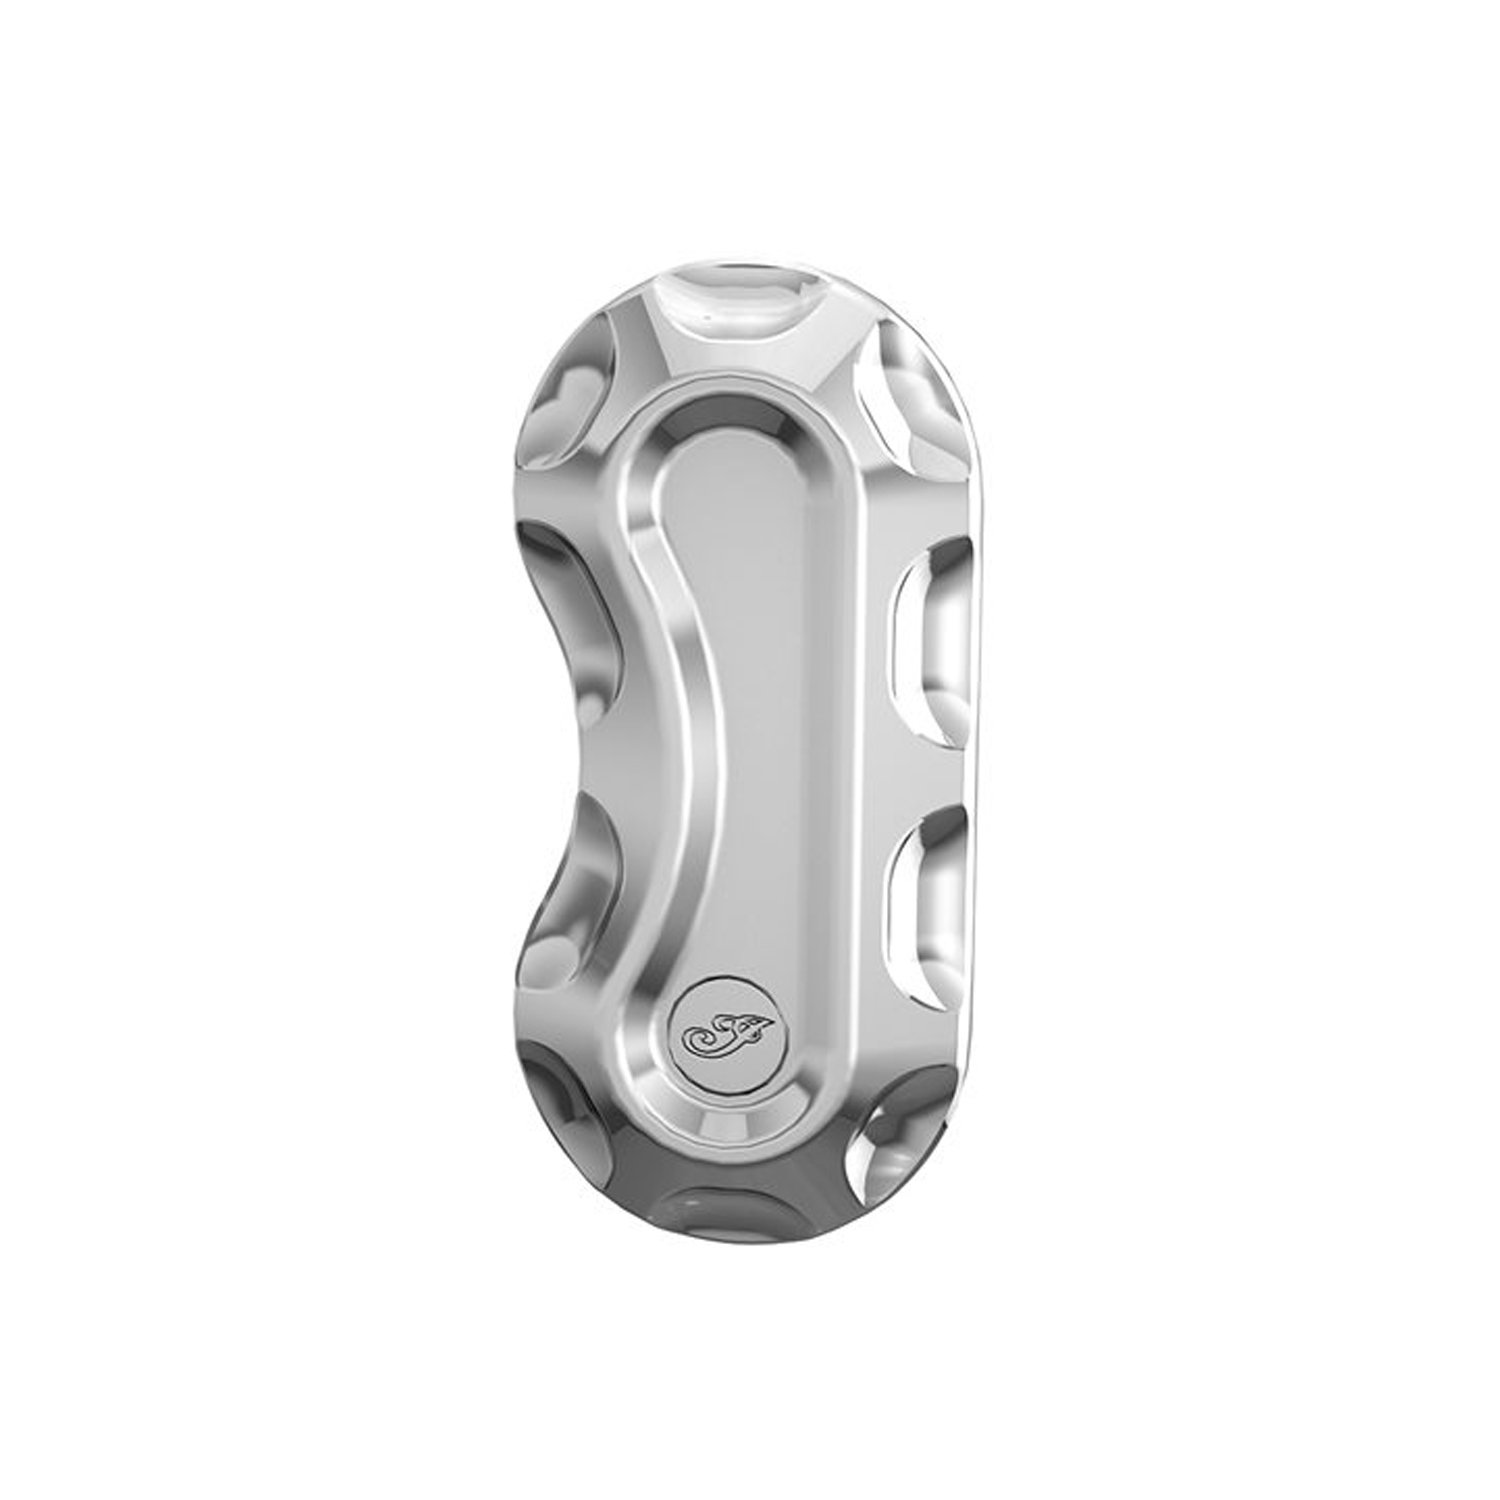 Billet Front Caliper Cover – Chrome